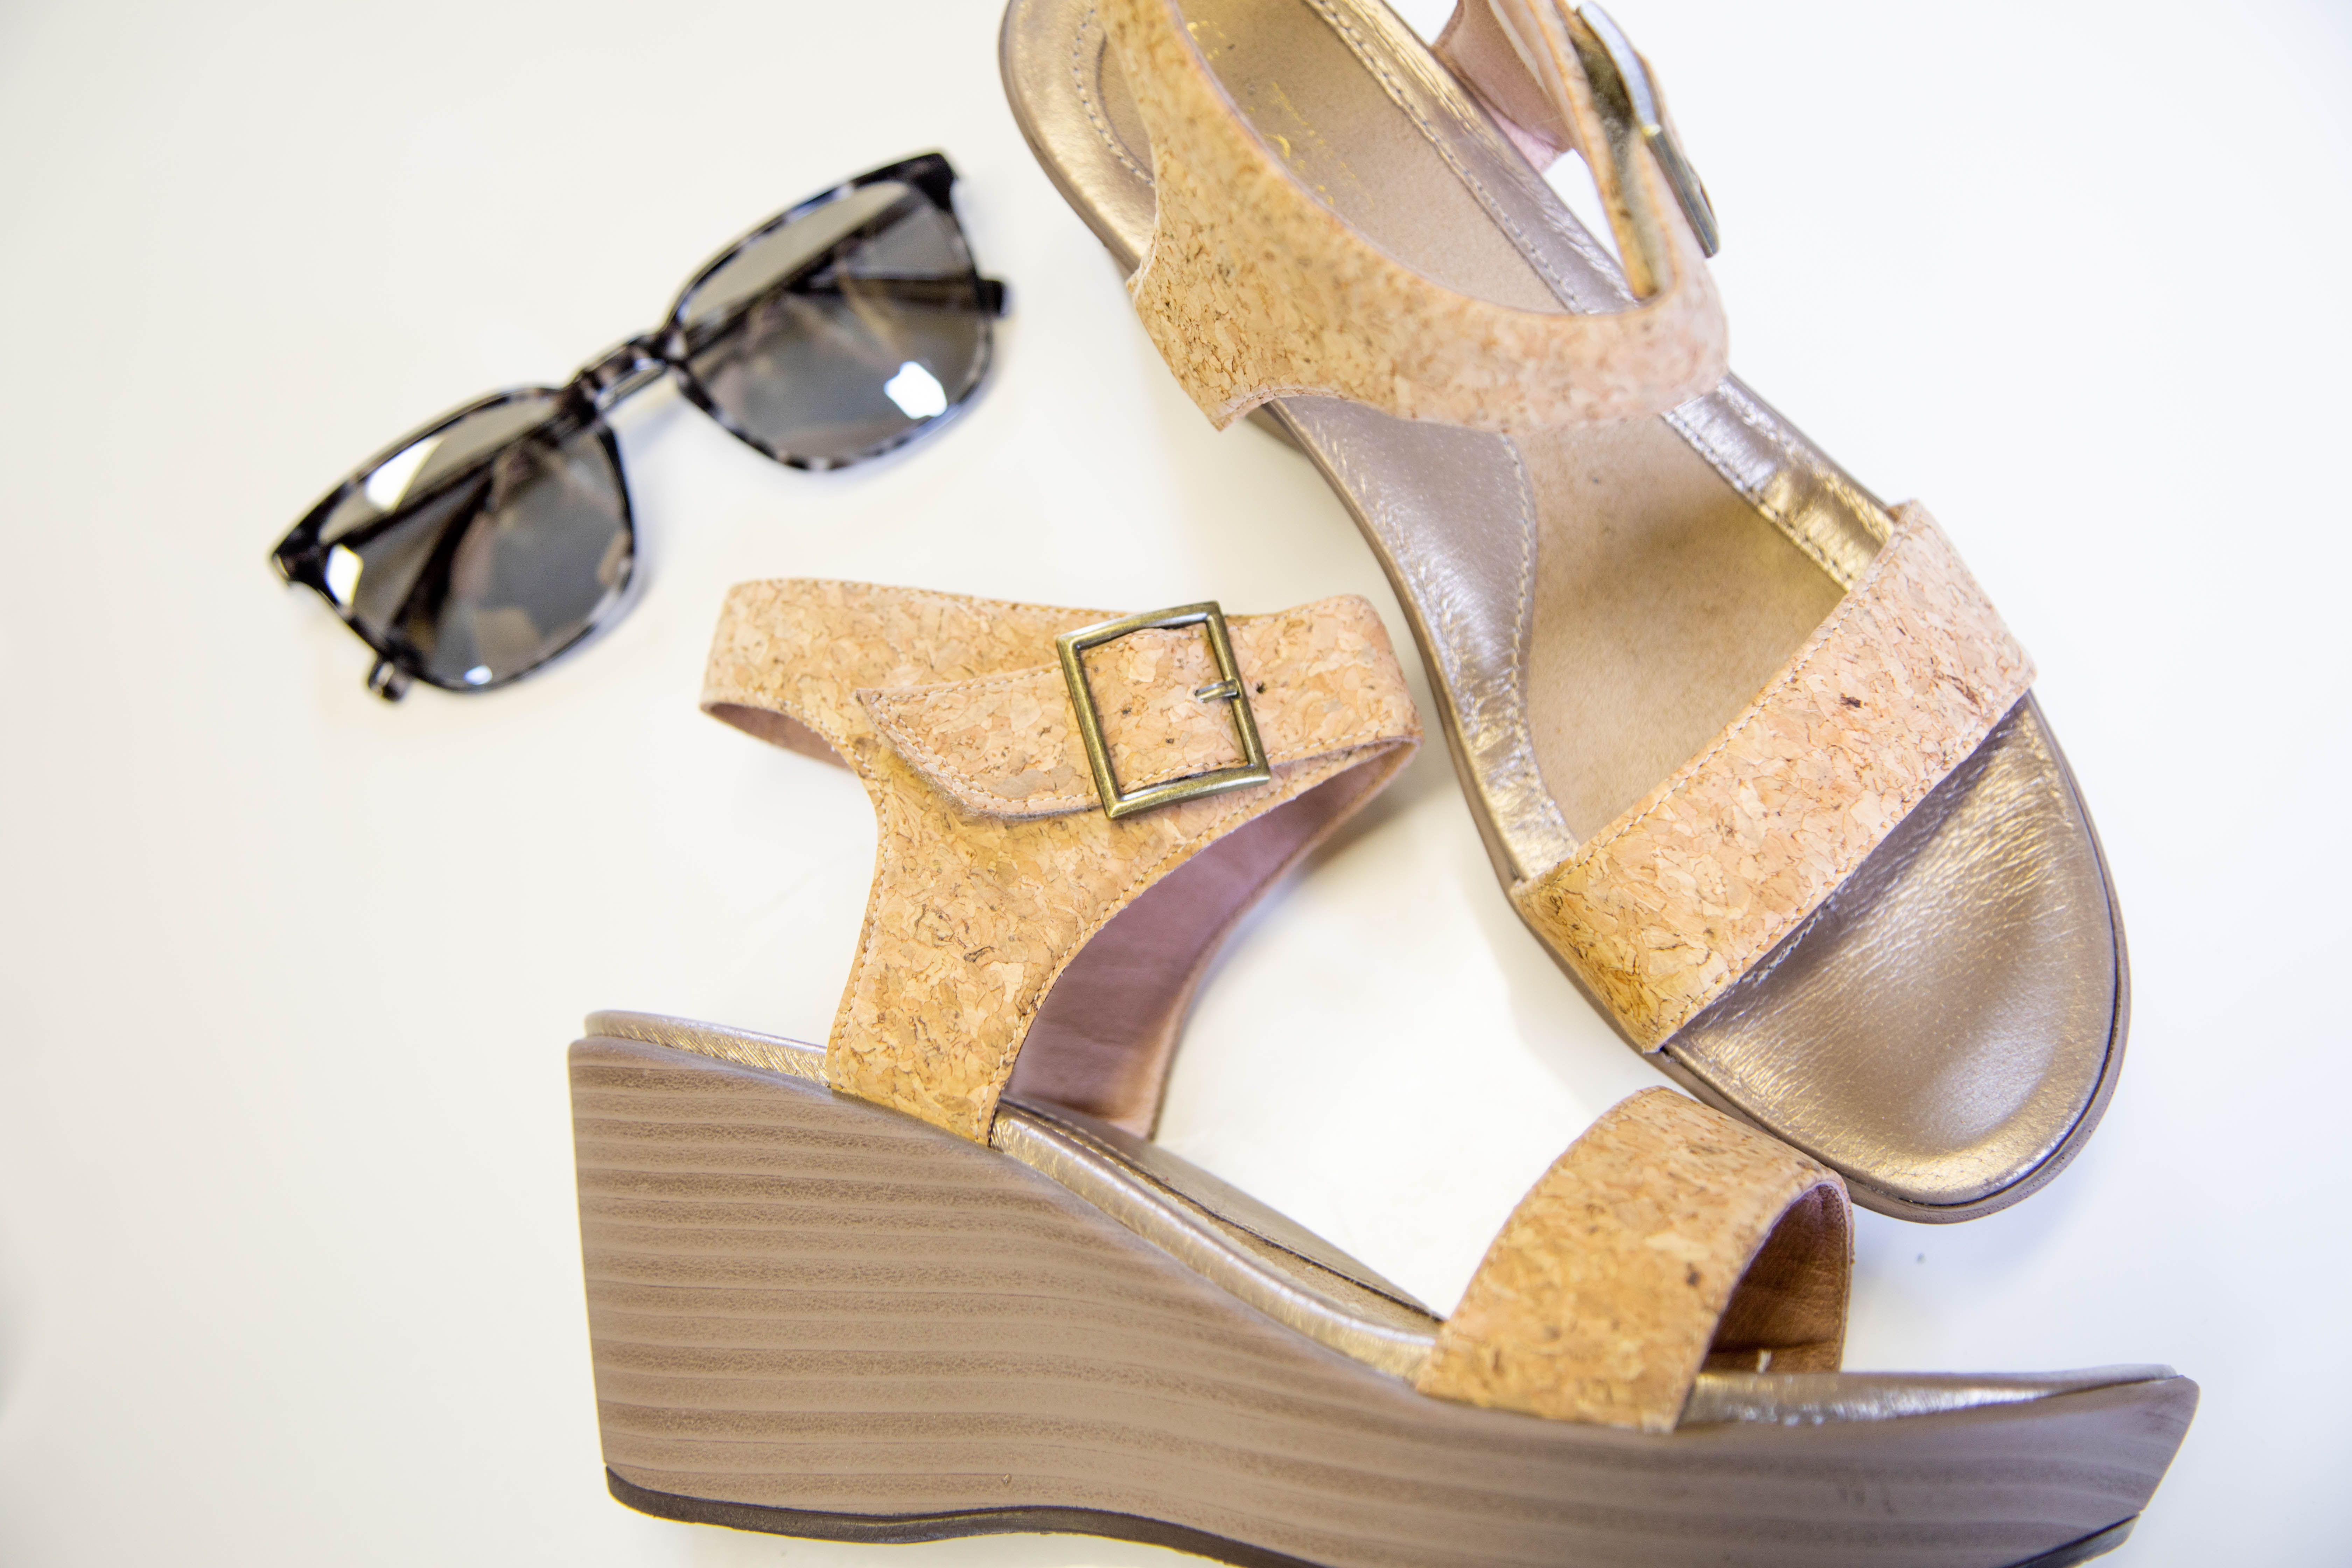 on sale 9ddbd c441f Our Caprice #wedges pair perfectly with #dresses and #jeans ...